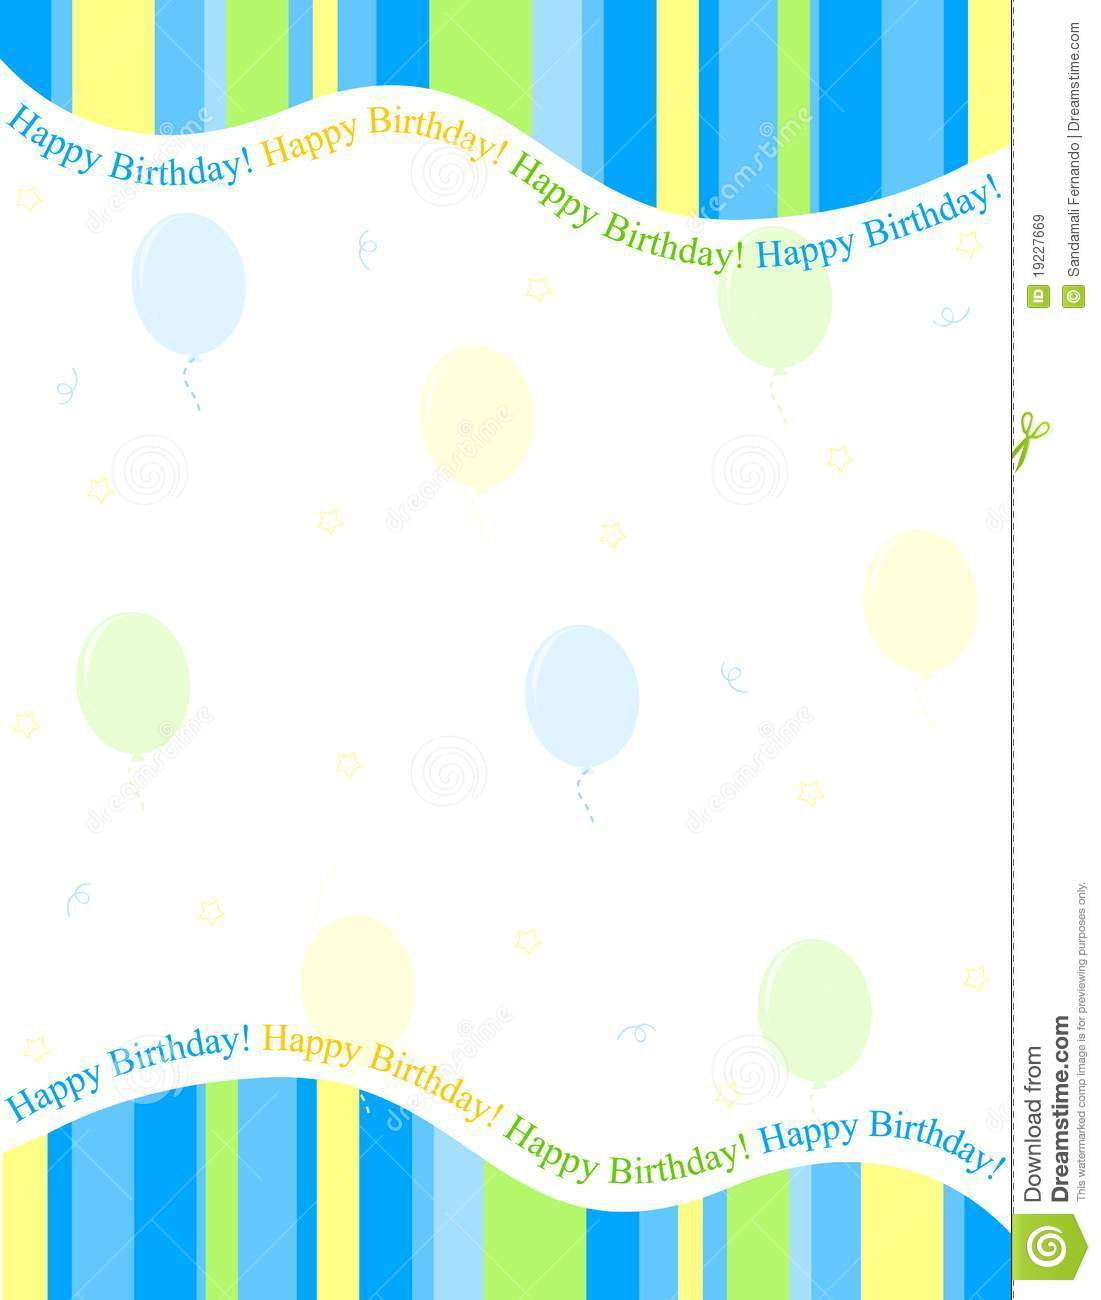 Birthday Background Royalty Free Stock Images - Image: 19227669